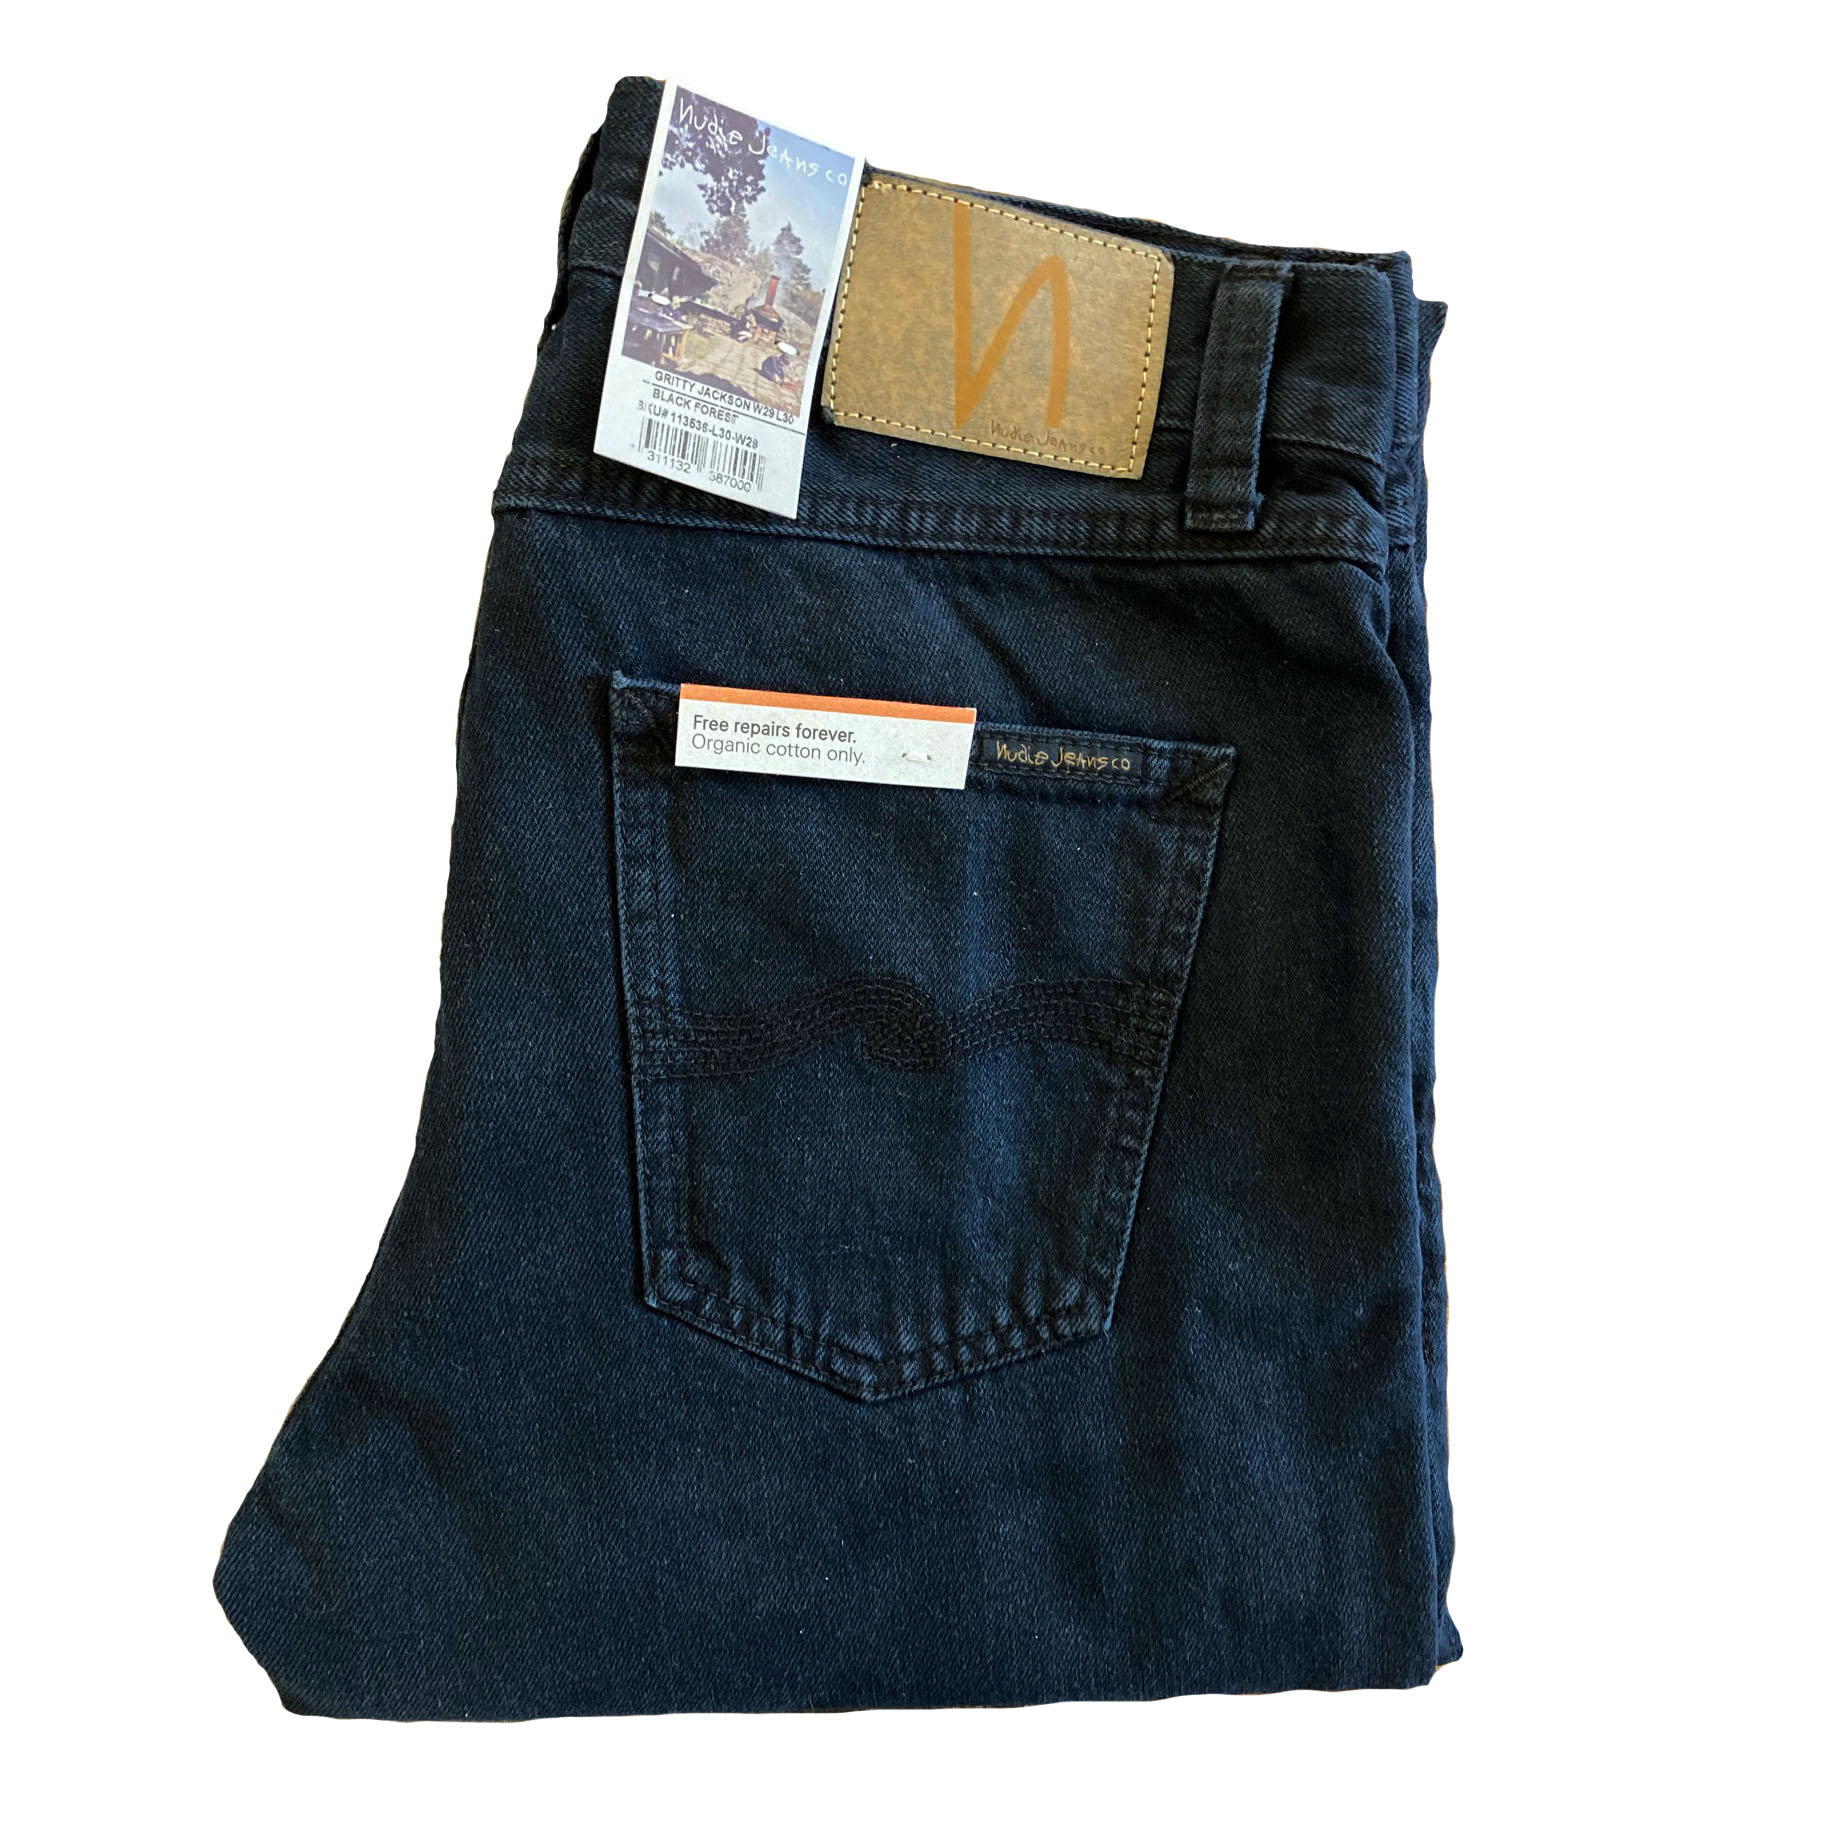 Nudie Jeans - GRITTY JACKSON - Black Forest